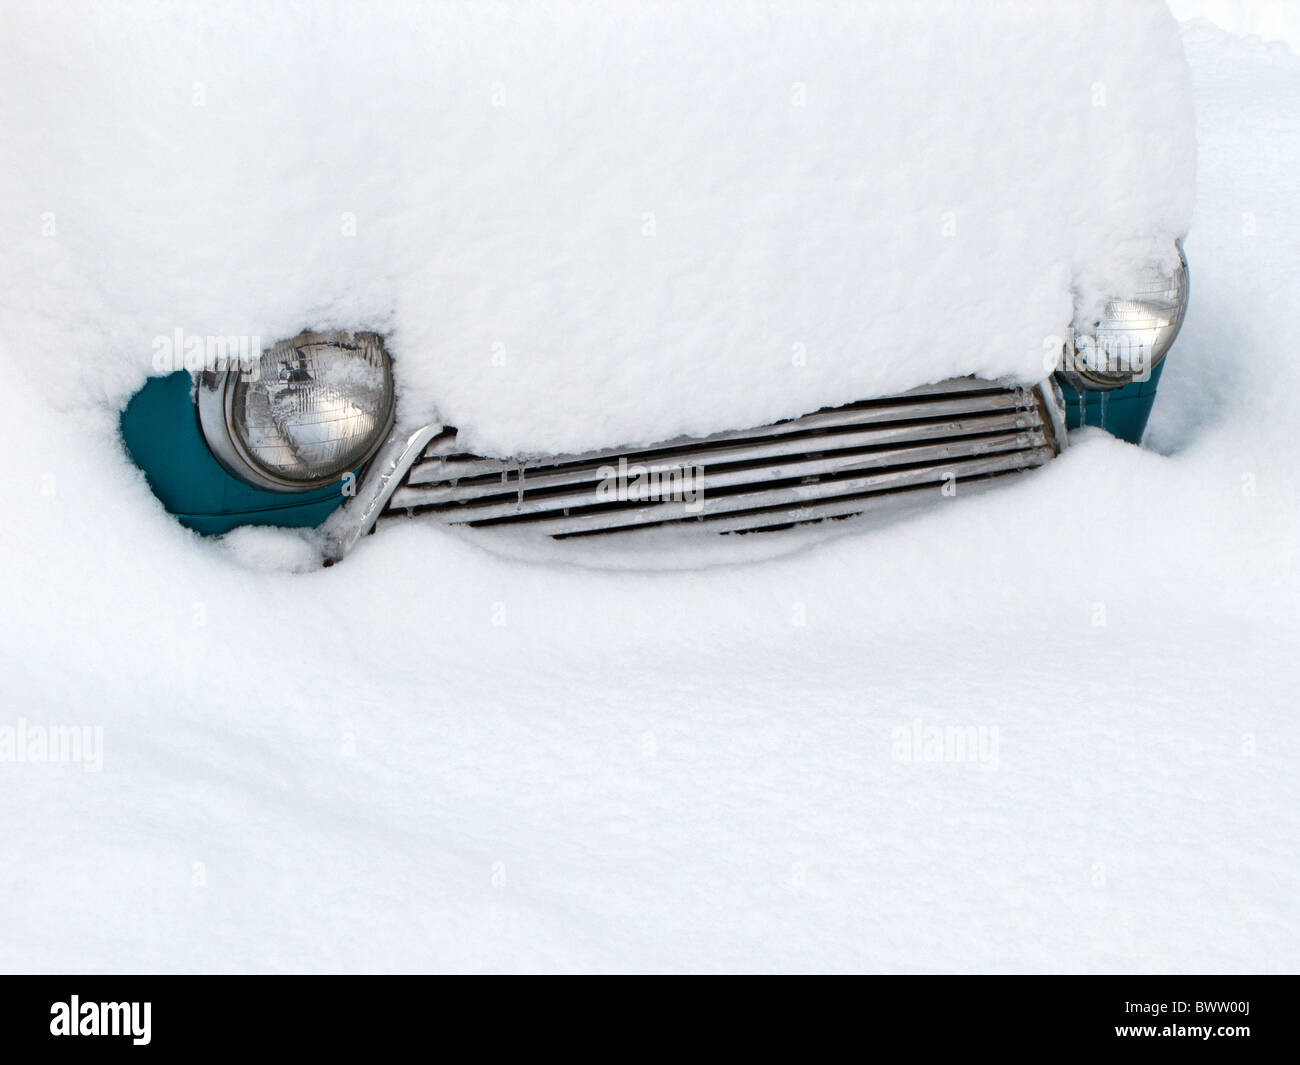 Car Grille and Headlamps poking through heavy snow - Stock Image